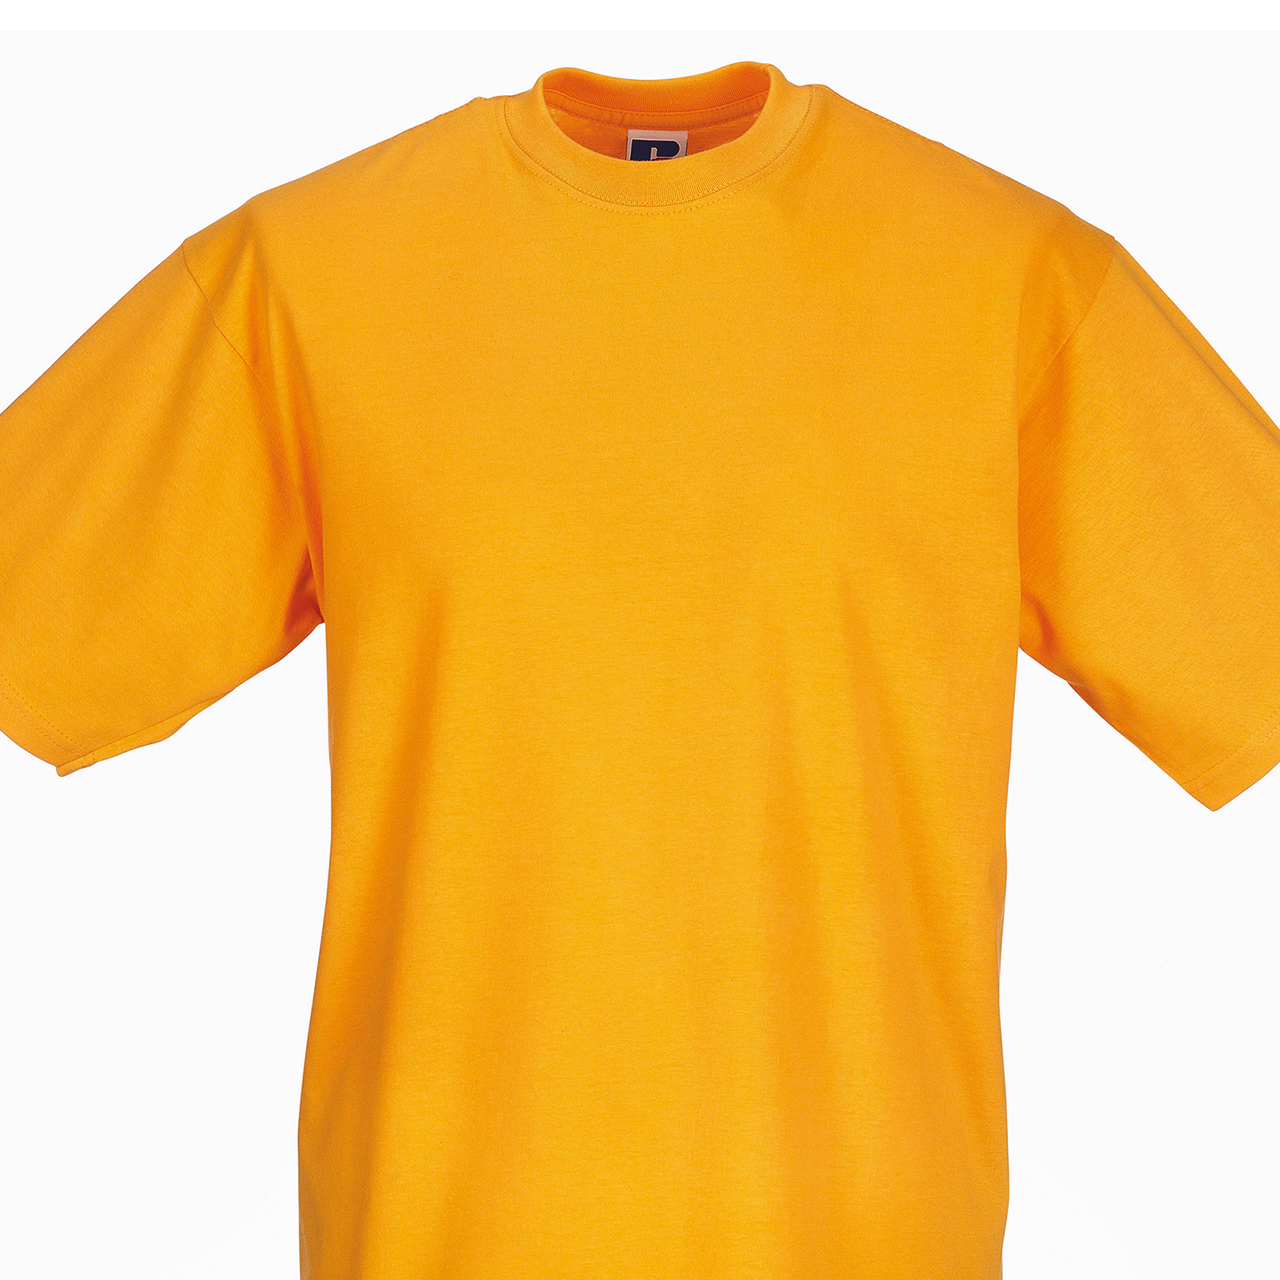 Pure Gold Printed T-Shirts from Jageto Embroidery and Print in Braintree, Essex UK